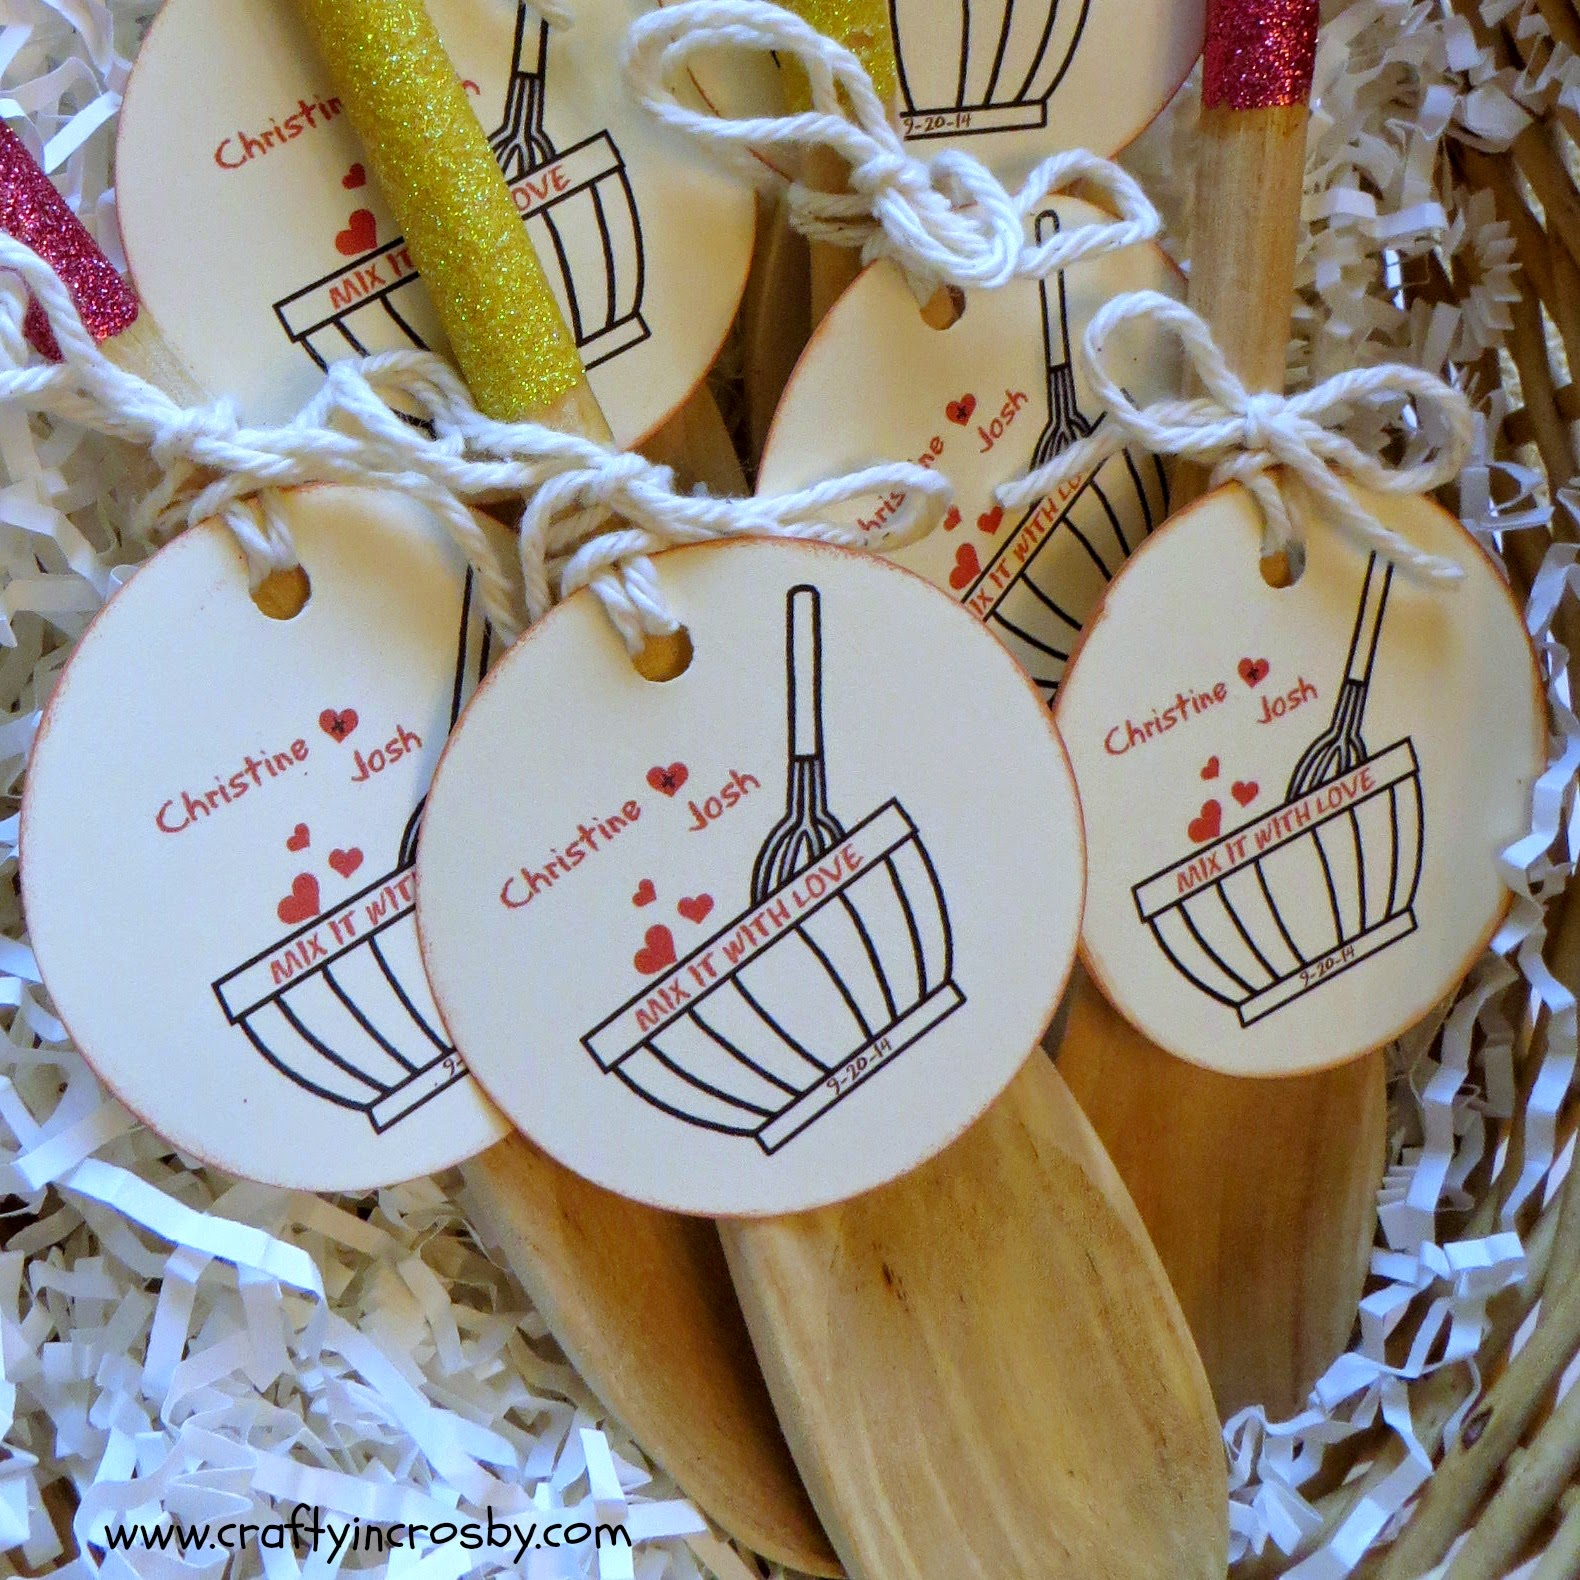 Wedding Favors: Crafty In Crosby: Bridal Shower Favors